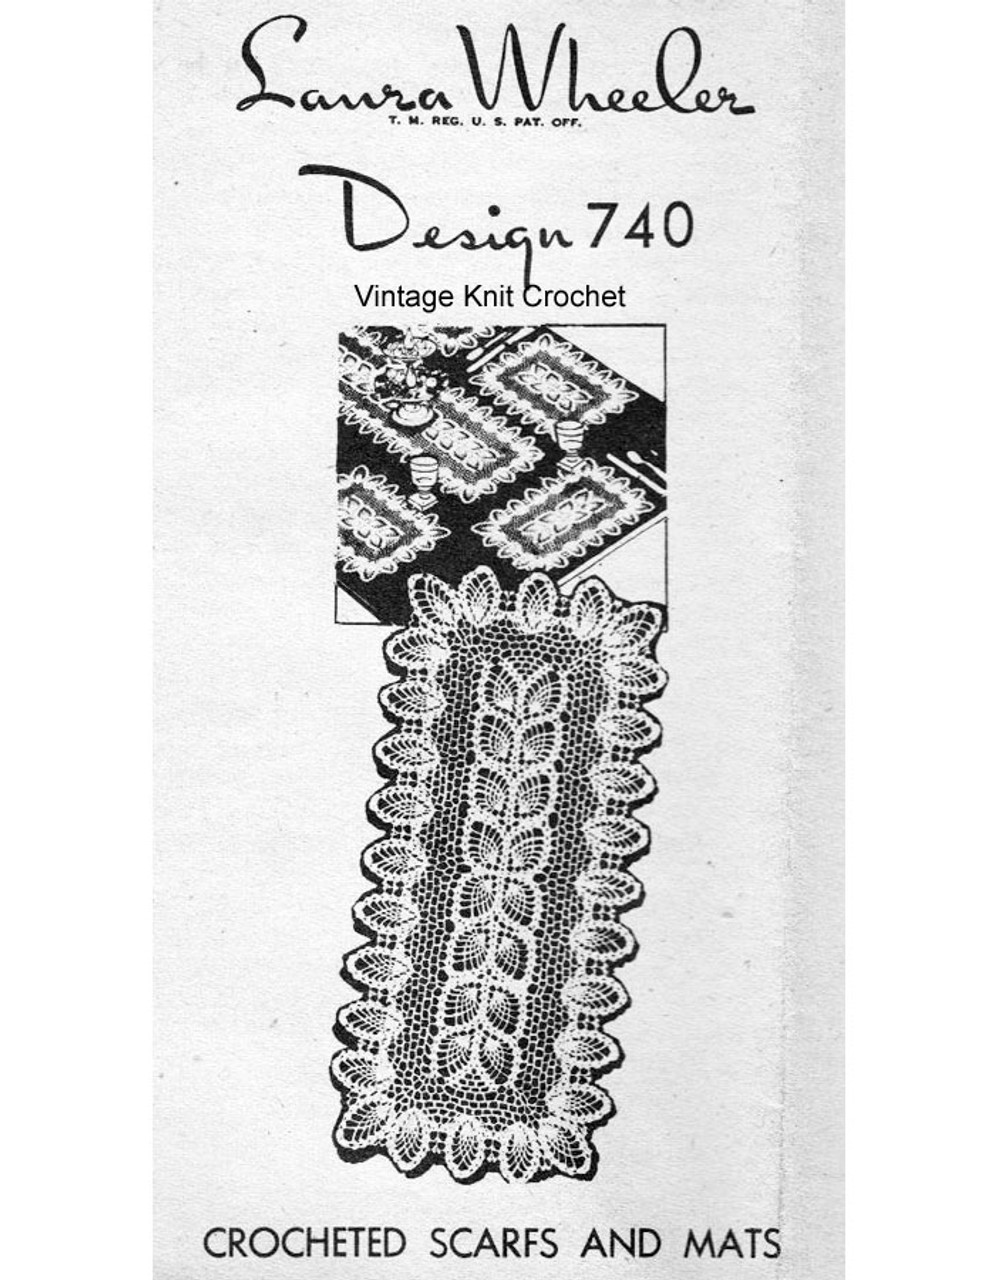 Crochet Pineapple Runner Mats Pattern Design 740